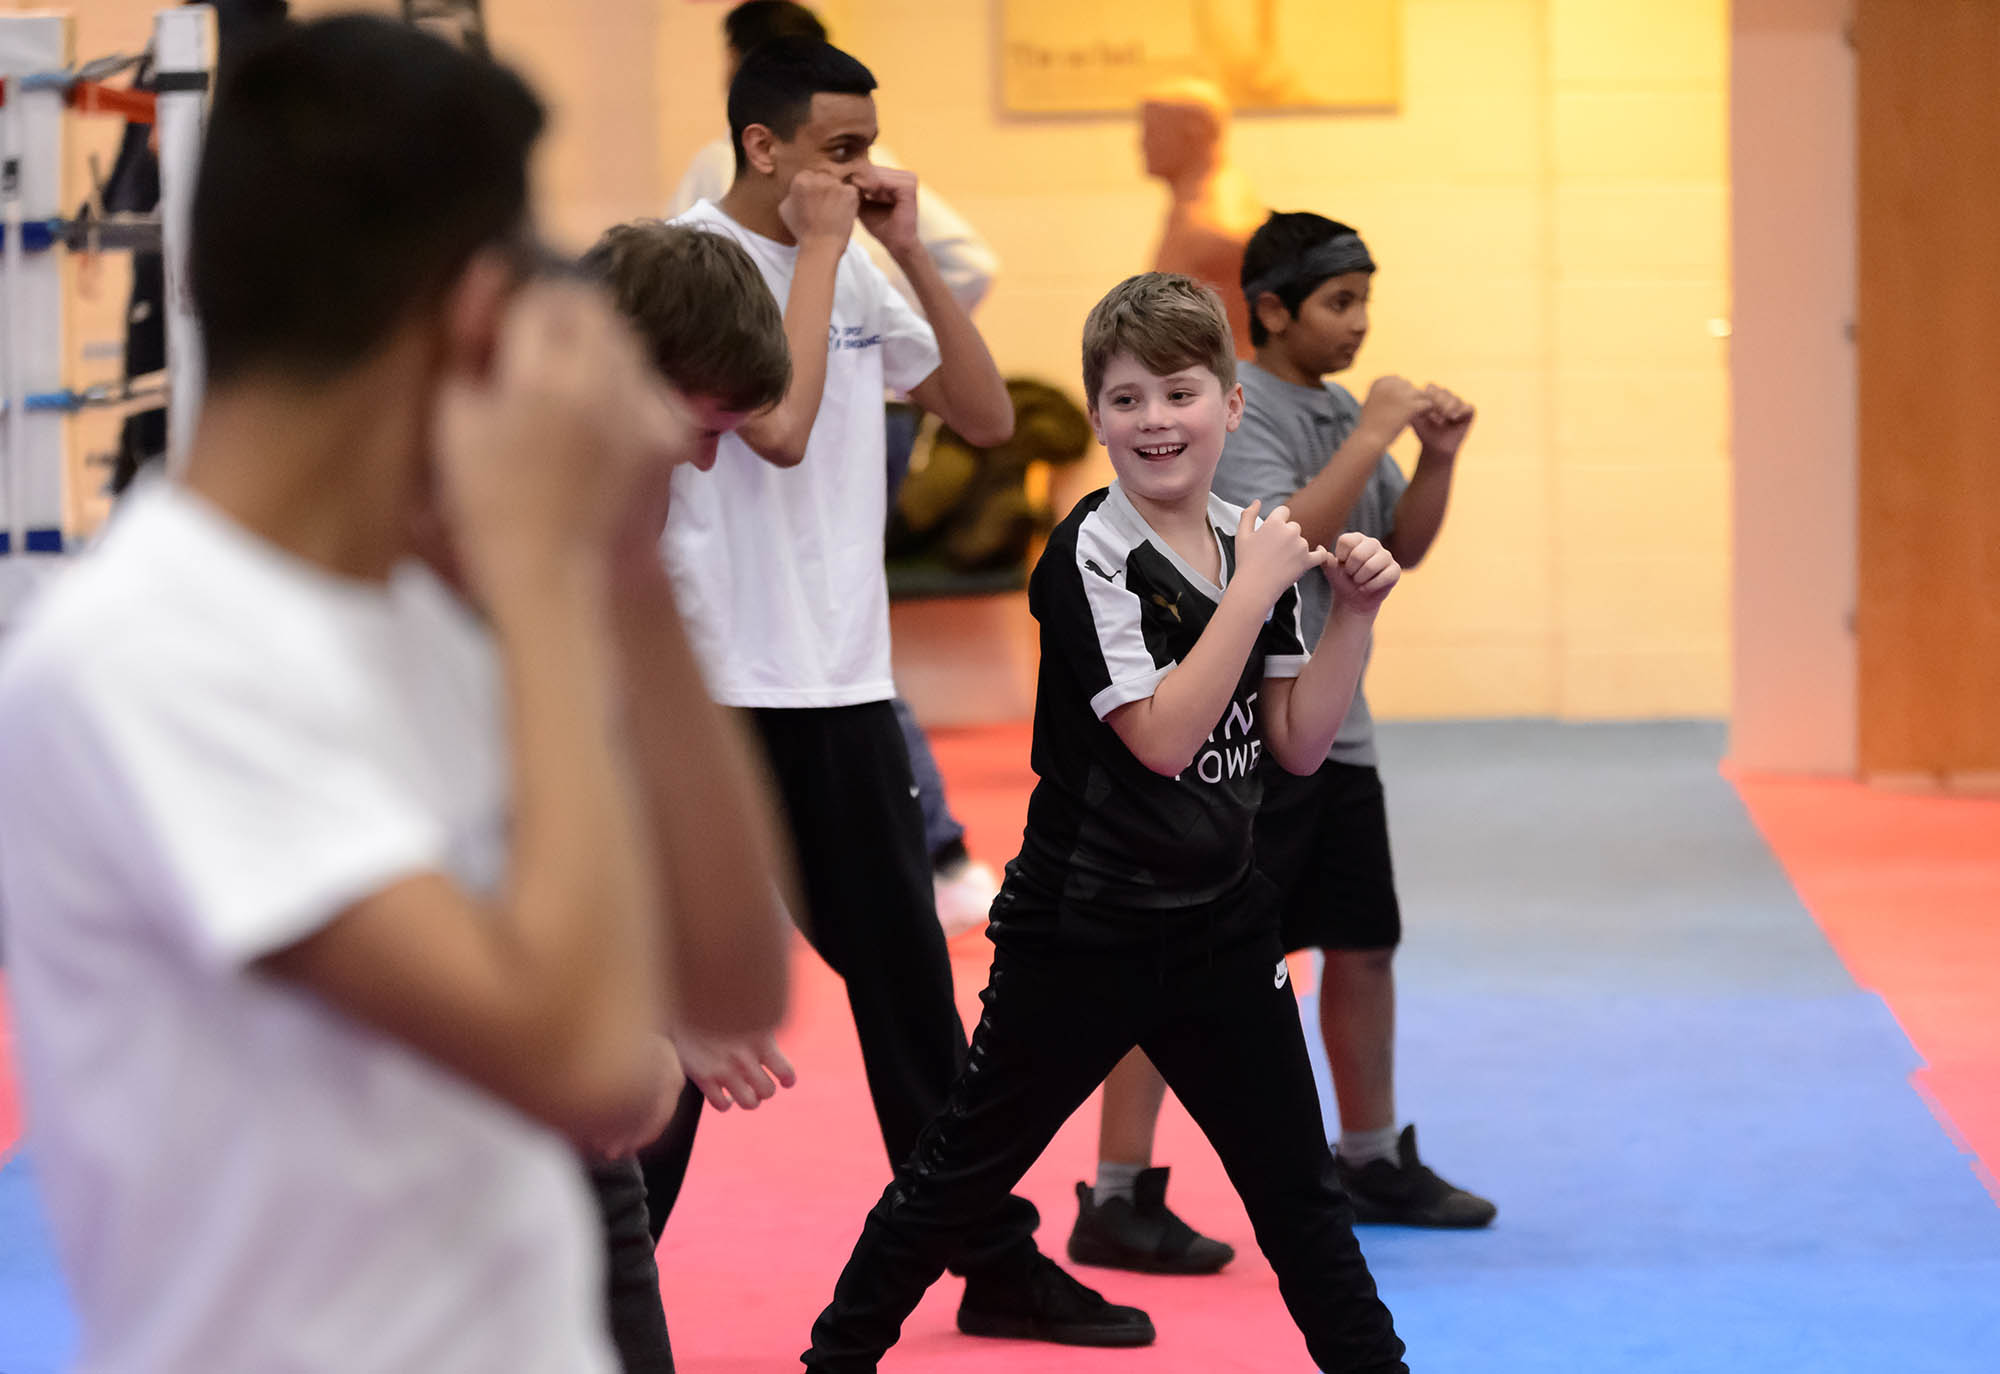 Young boys learning boxing from older boys in gym